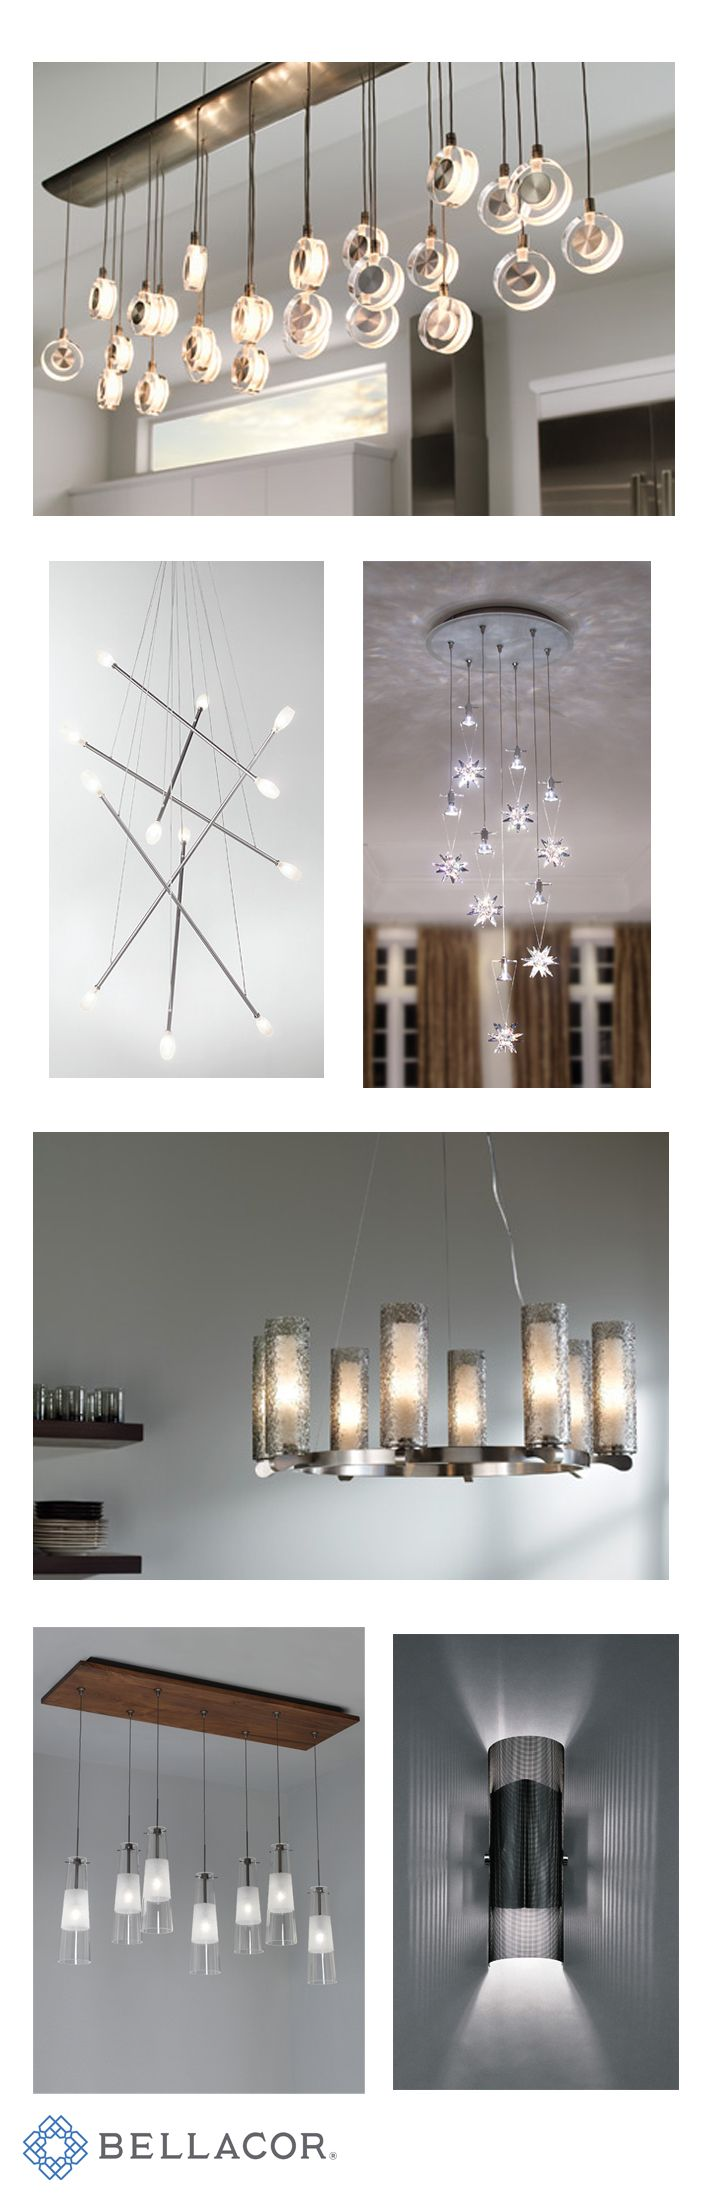 LBL Lighting's eclectic designs & decorative forms celebrate the functional, artistic nature of lighting and accentuate the relationship between glass, art and lighting. One of LBL's pieces will look great in your home and with free shipping on orders over $75 and the Bellacor price match guarantee you are sure to get the best deal. http://www.bellacor.com/lbl-lighting.htm?partid=social_pinterestad_holiday_lblsale